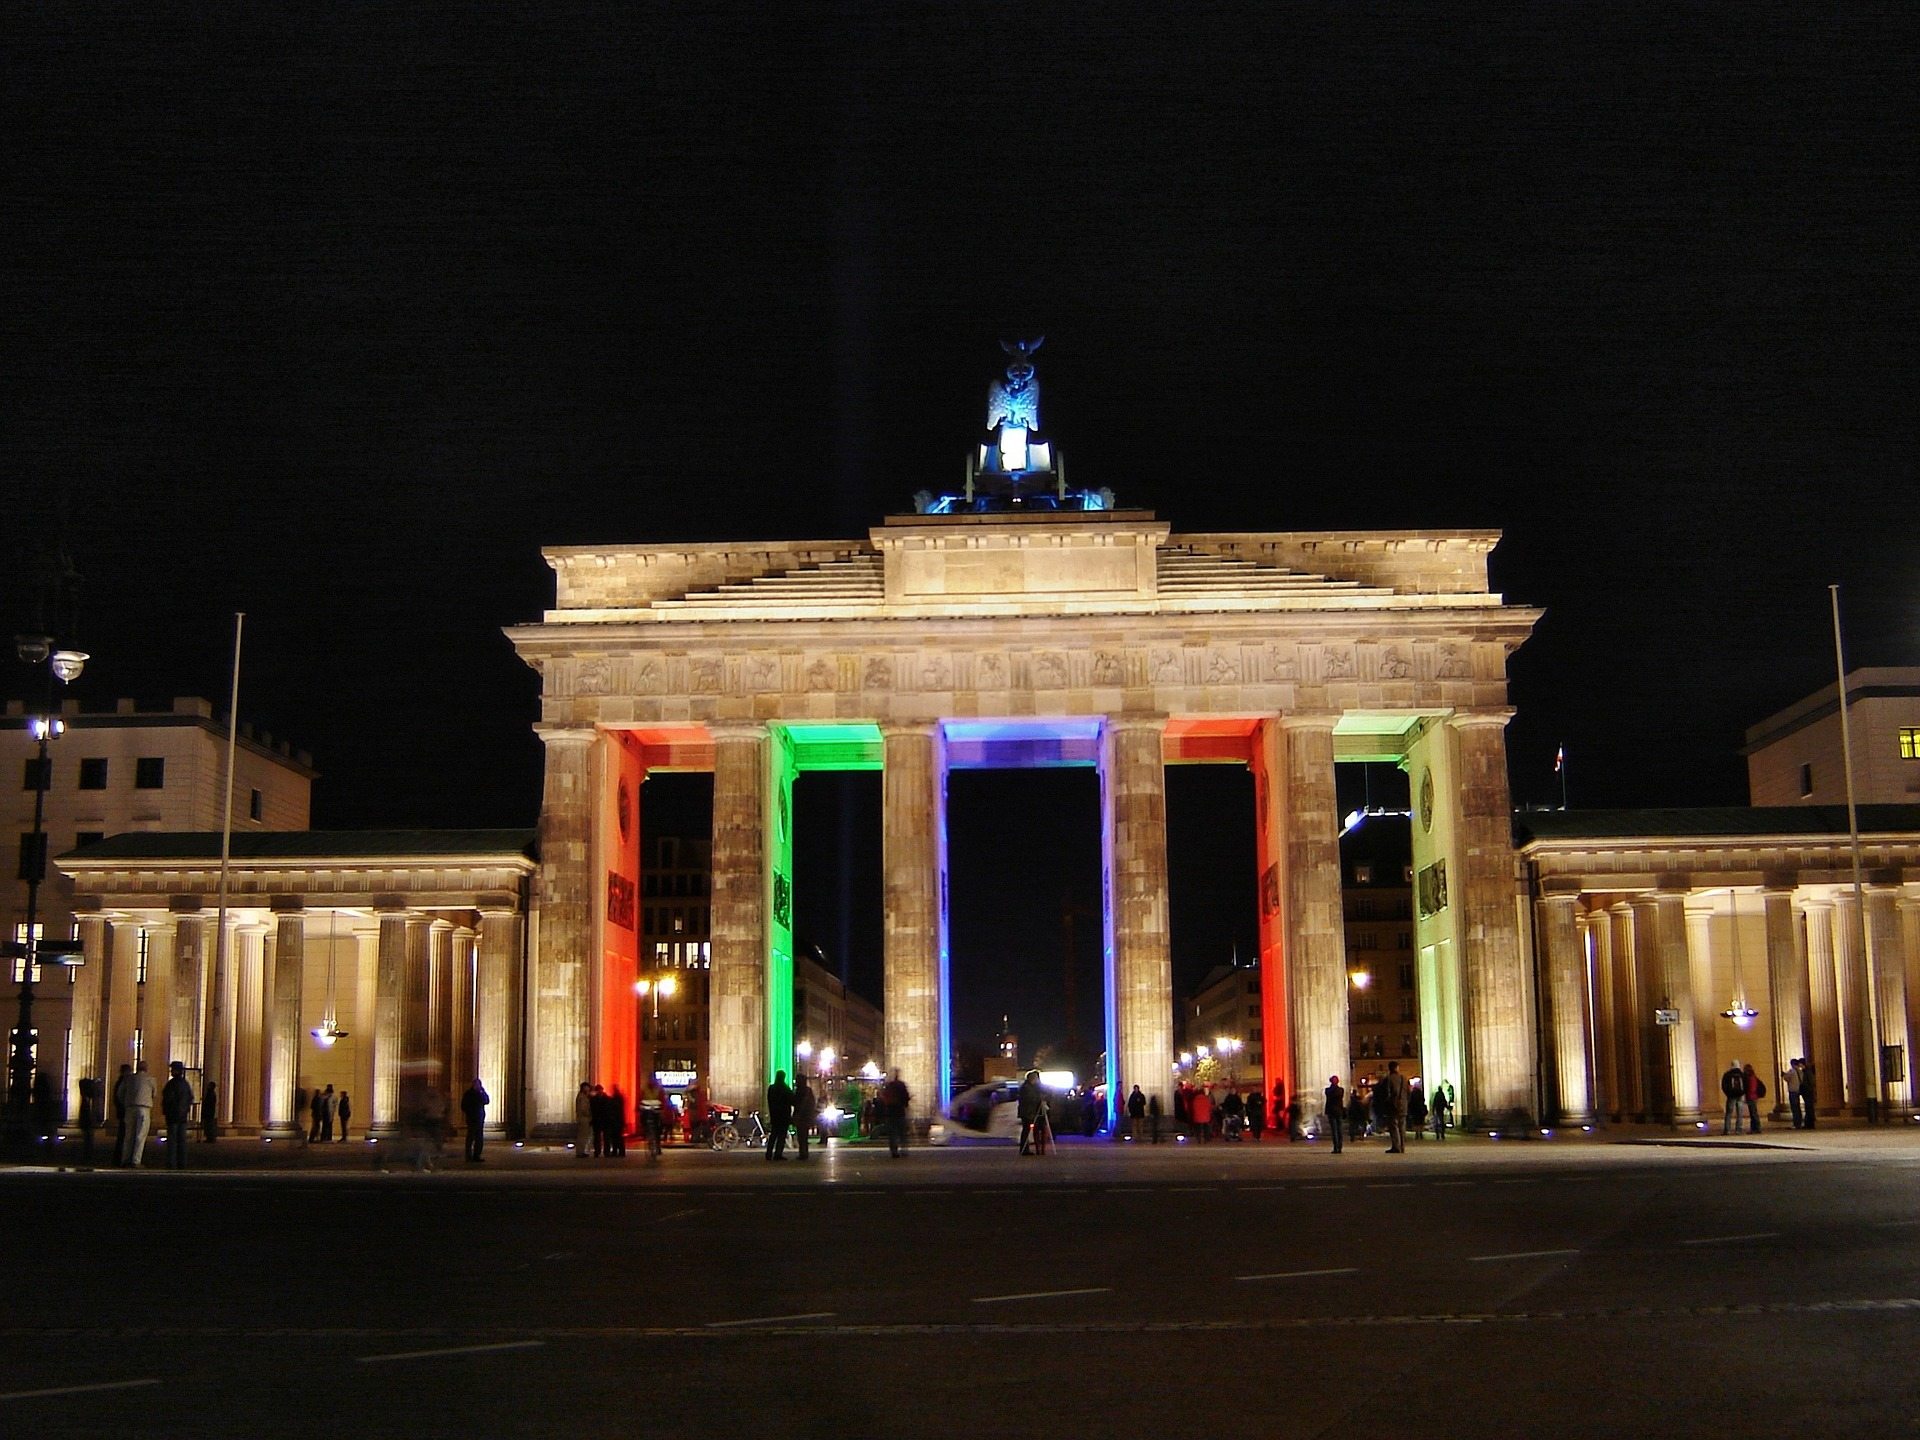 Berlin nightlife for solo travellers